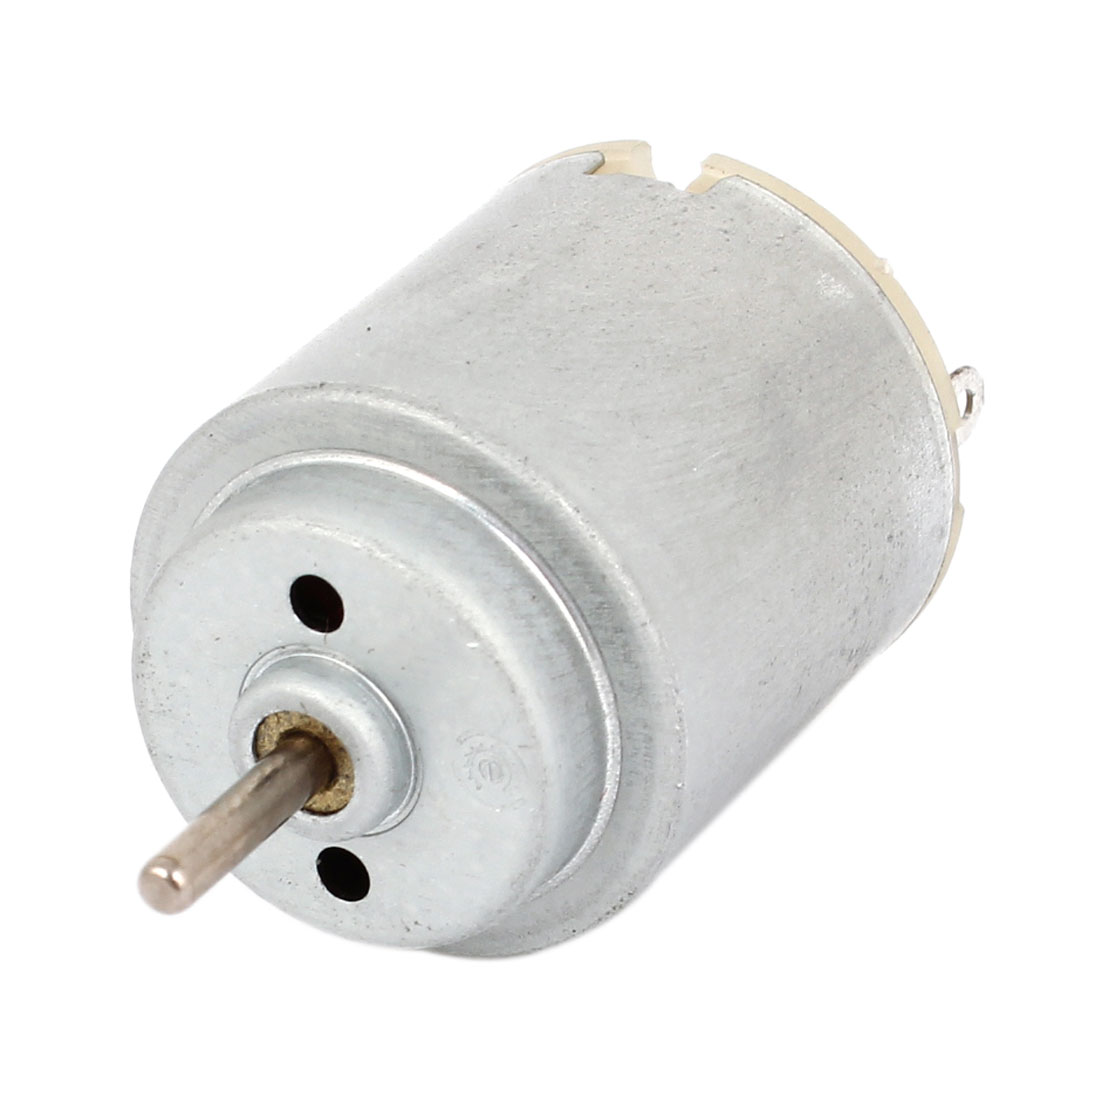 1.5-6V 17000RPM Rotary Speed High Torque RC Helicopter DC Motor